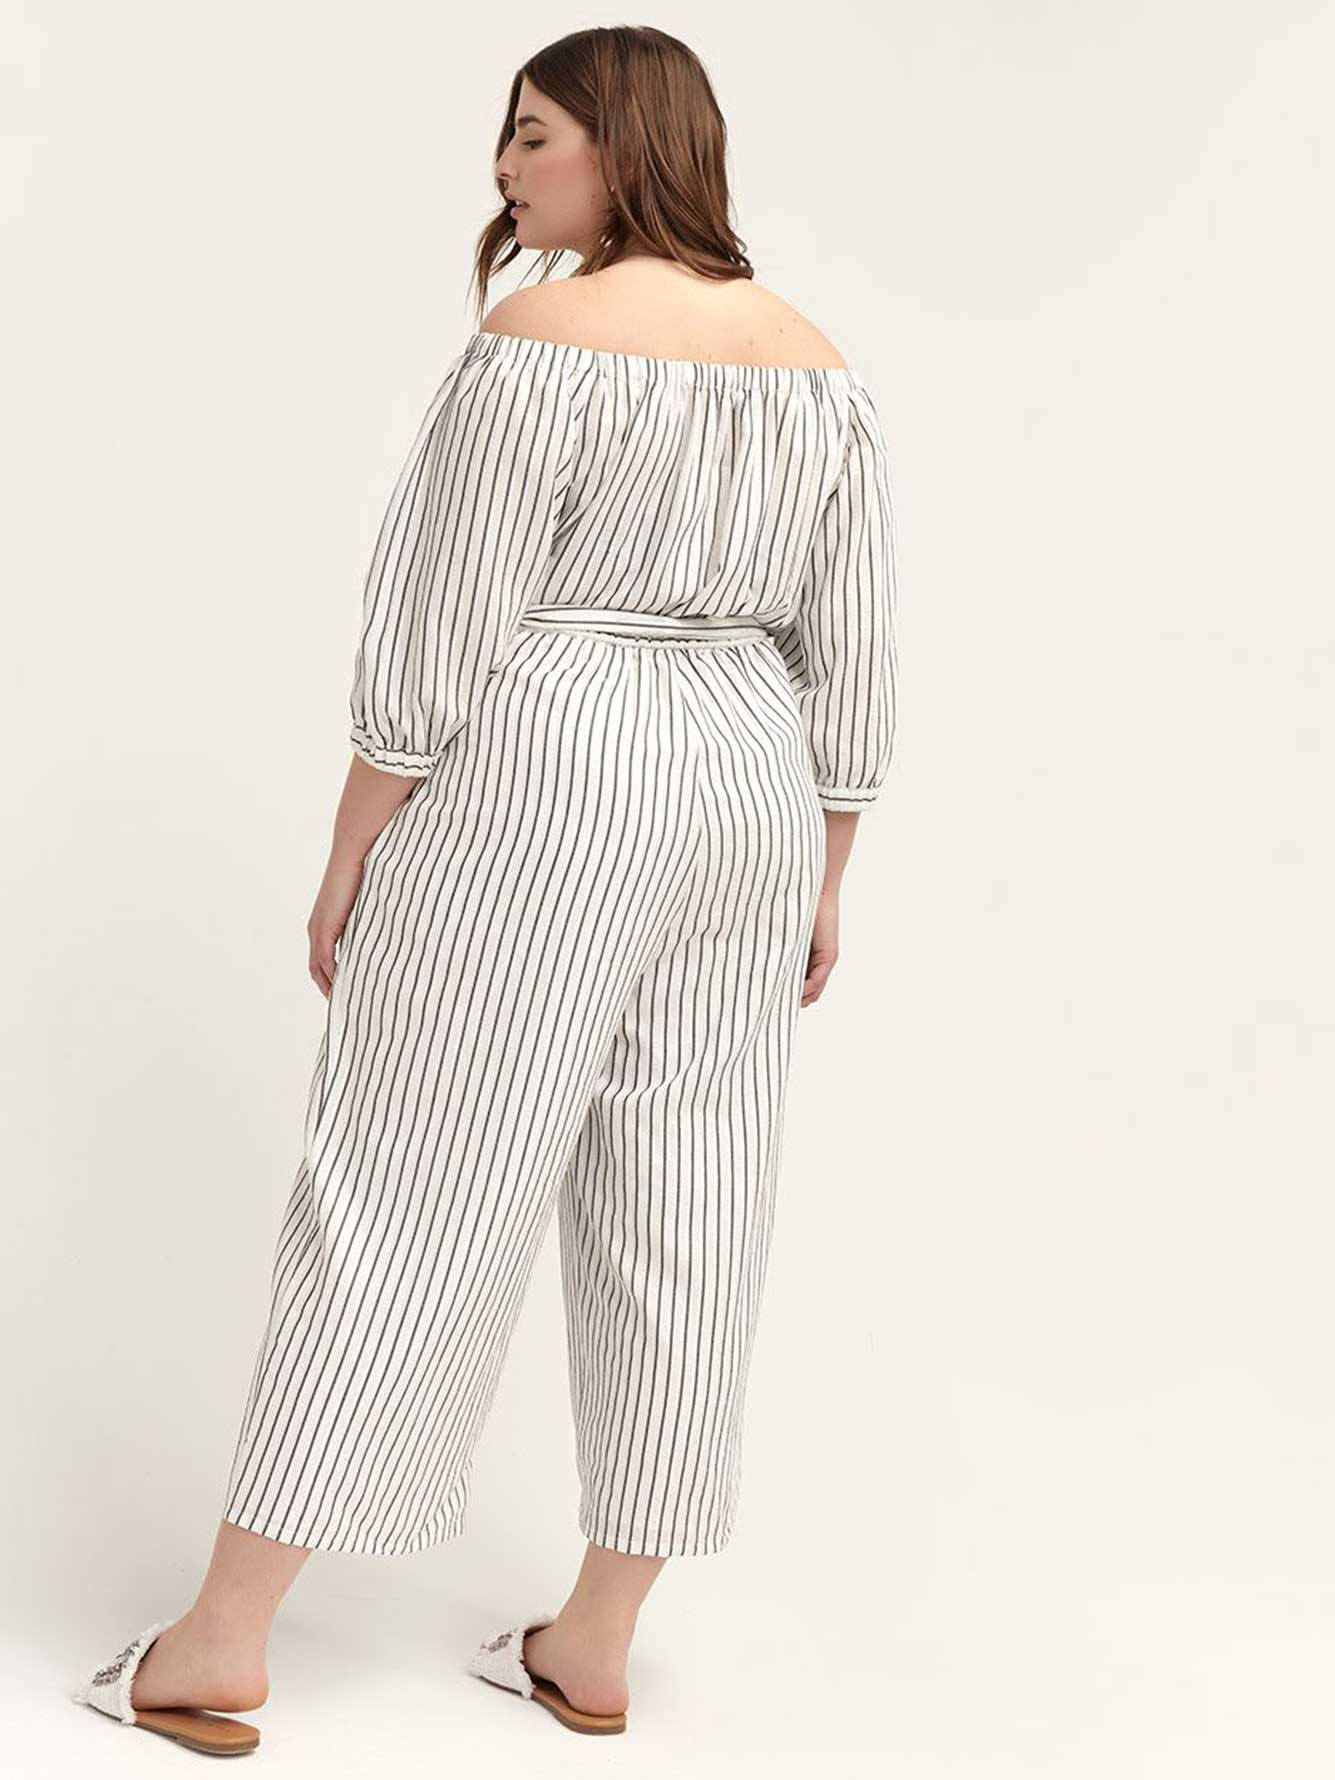 Off-the-Shoulder Tie-at-Waist Aida Jumpsuit - RACHEL Rachel Roy